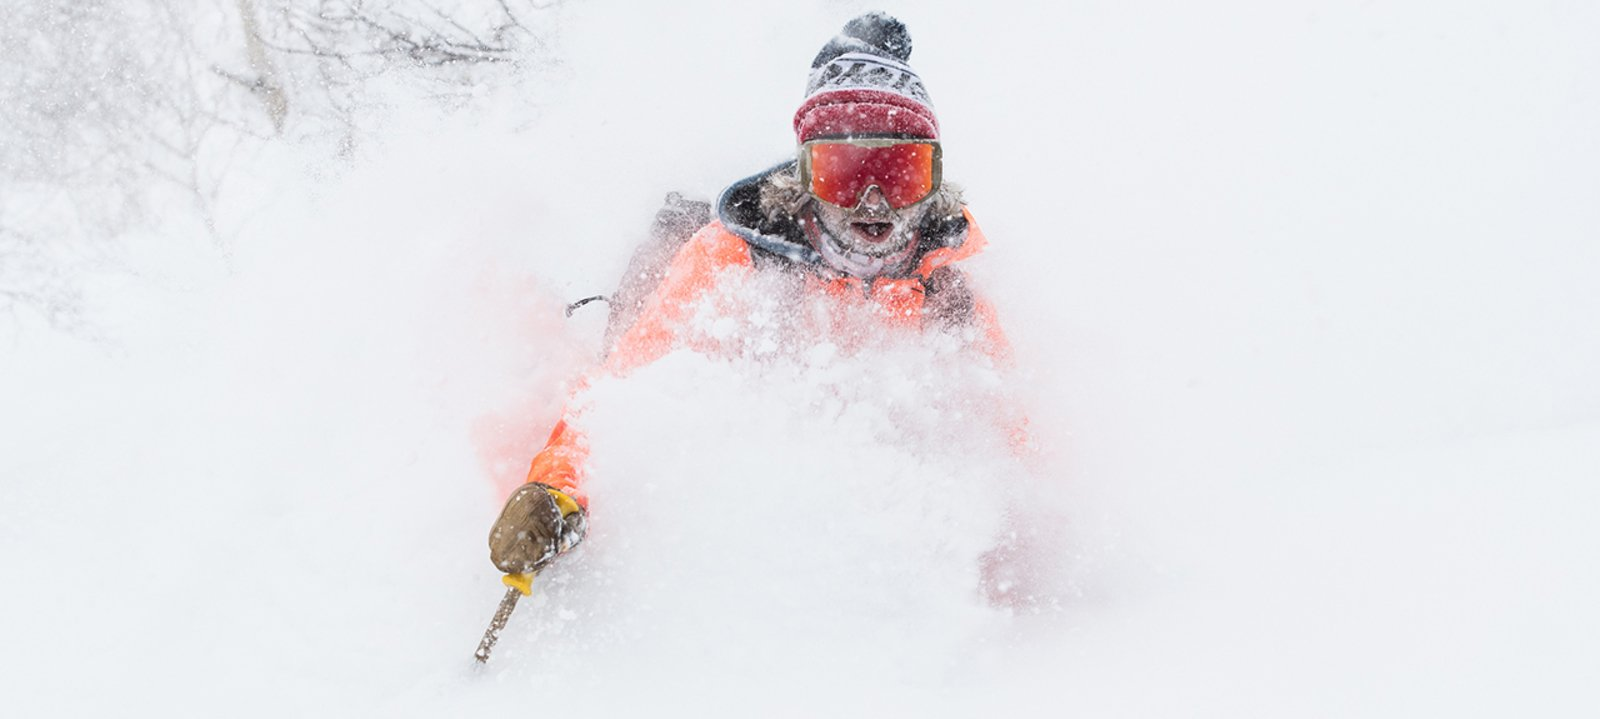 February Powder Madness